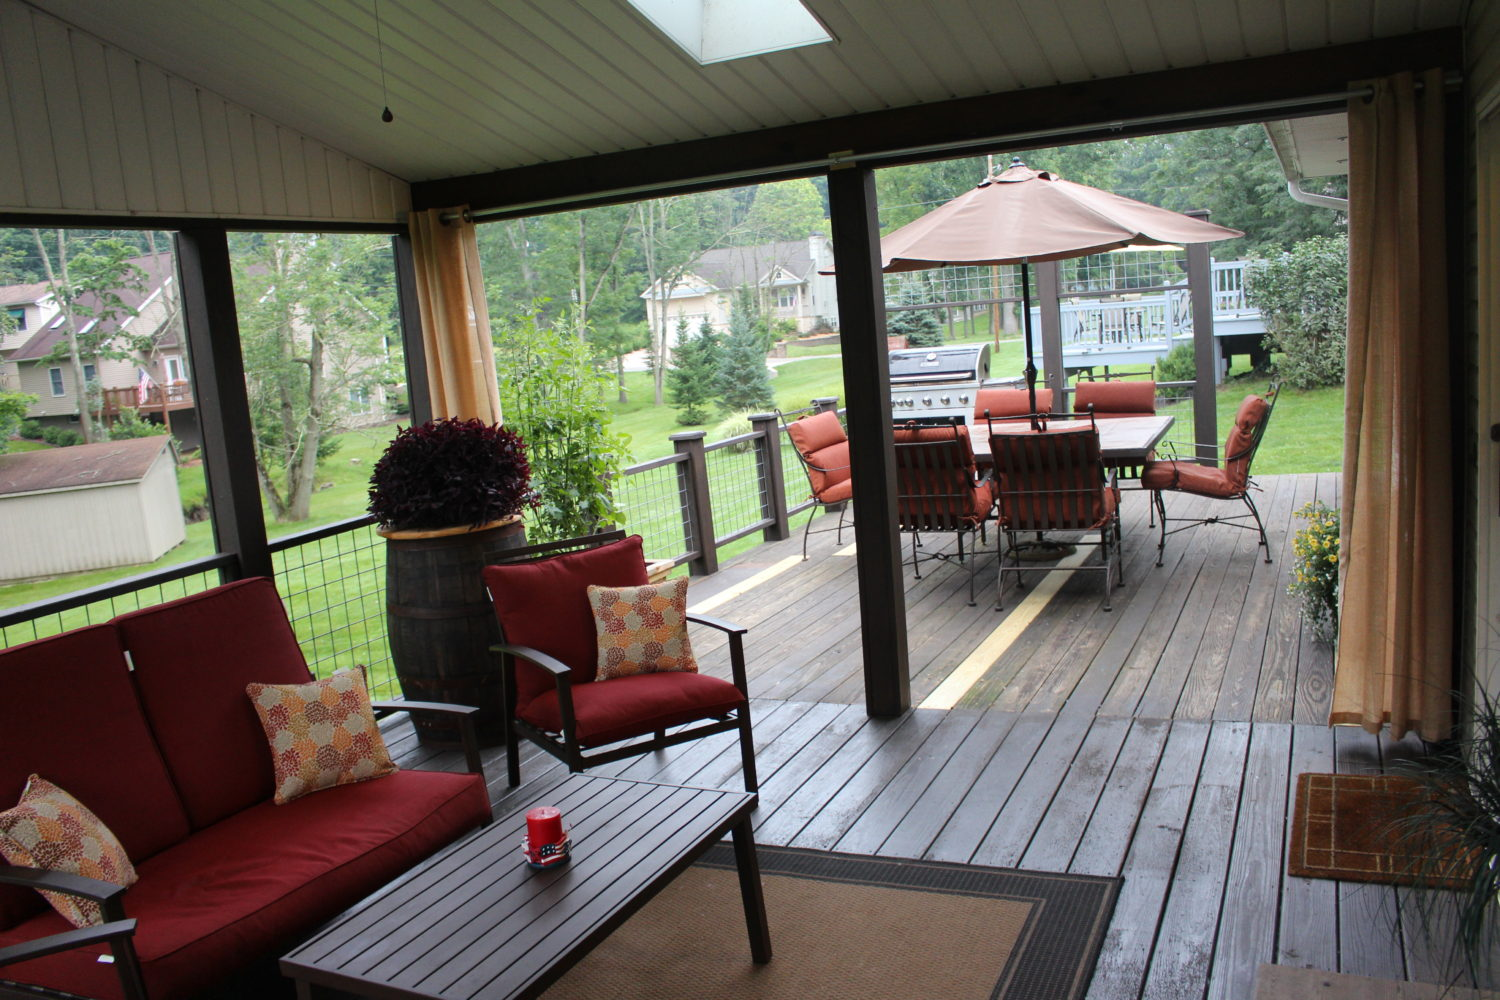 Creating An Outdoor Living Room From A Screened-In Porch ... on Garden Houses Outdoor Living id=18457